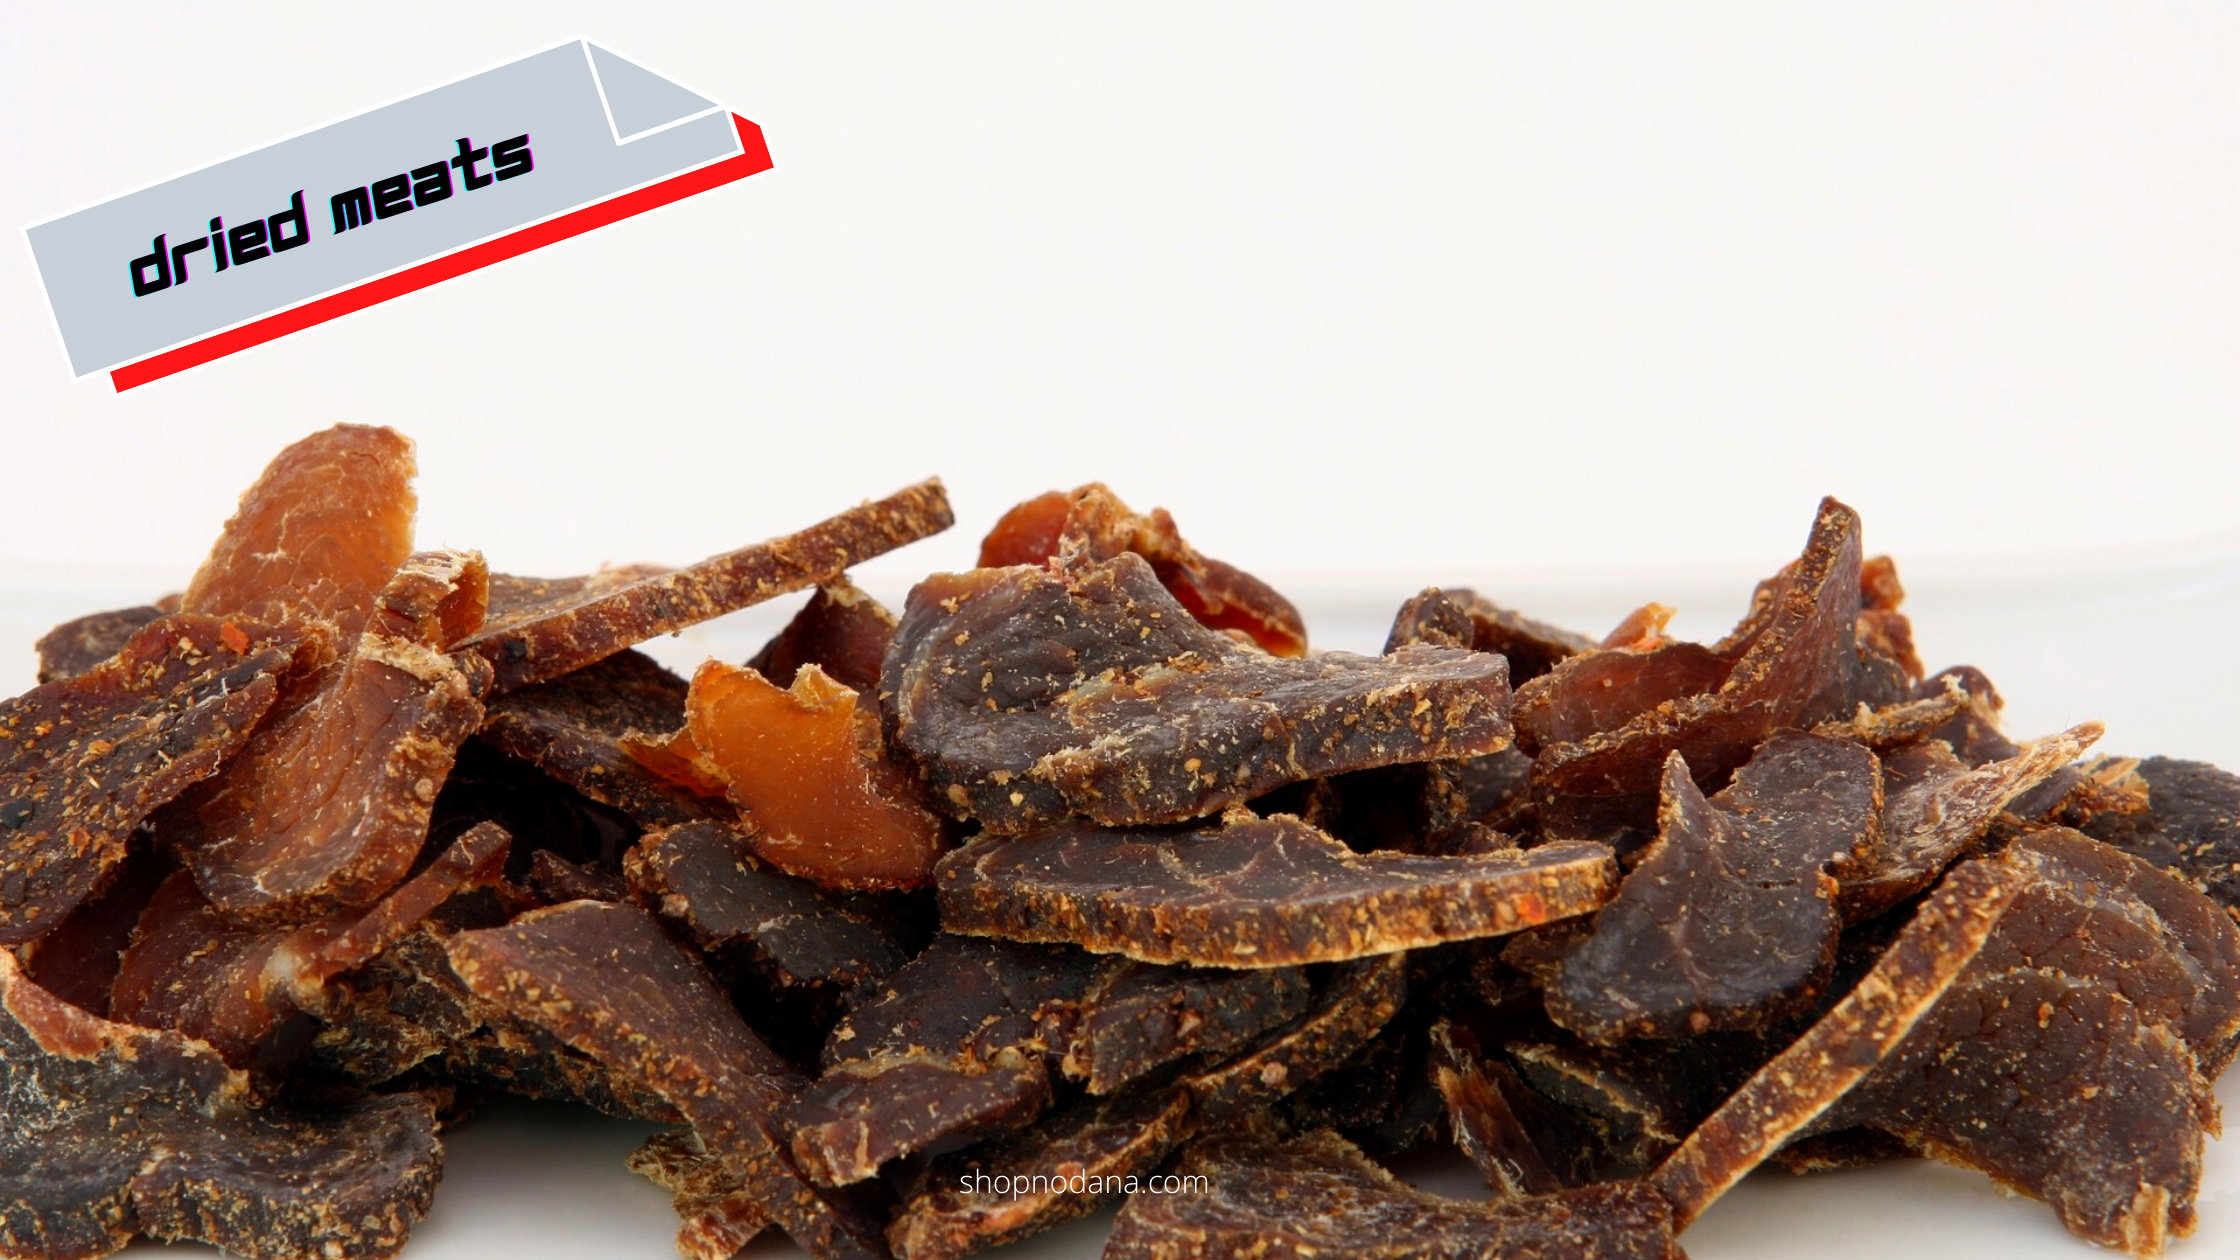 Dried meat- Foods that last a long time without refrigeration